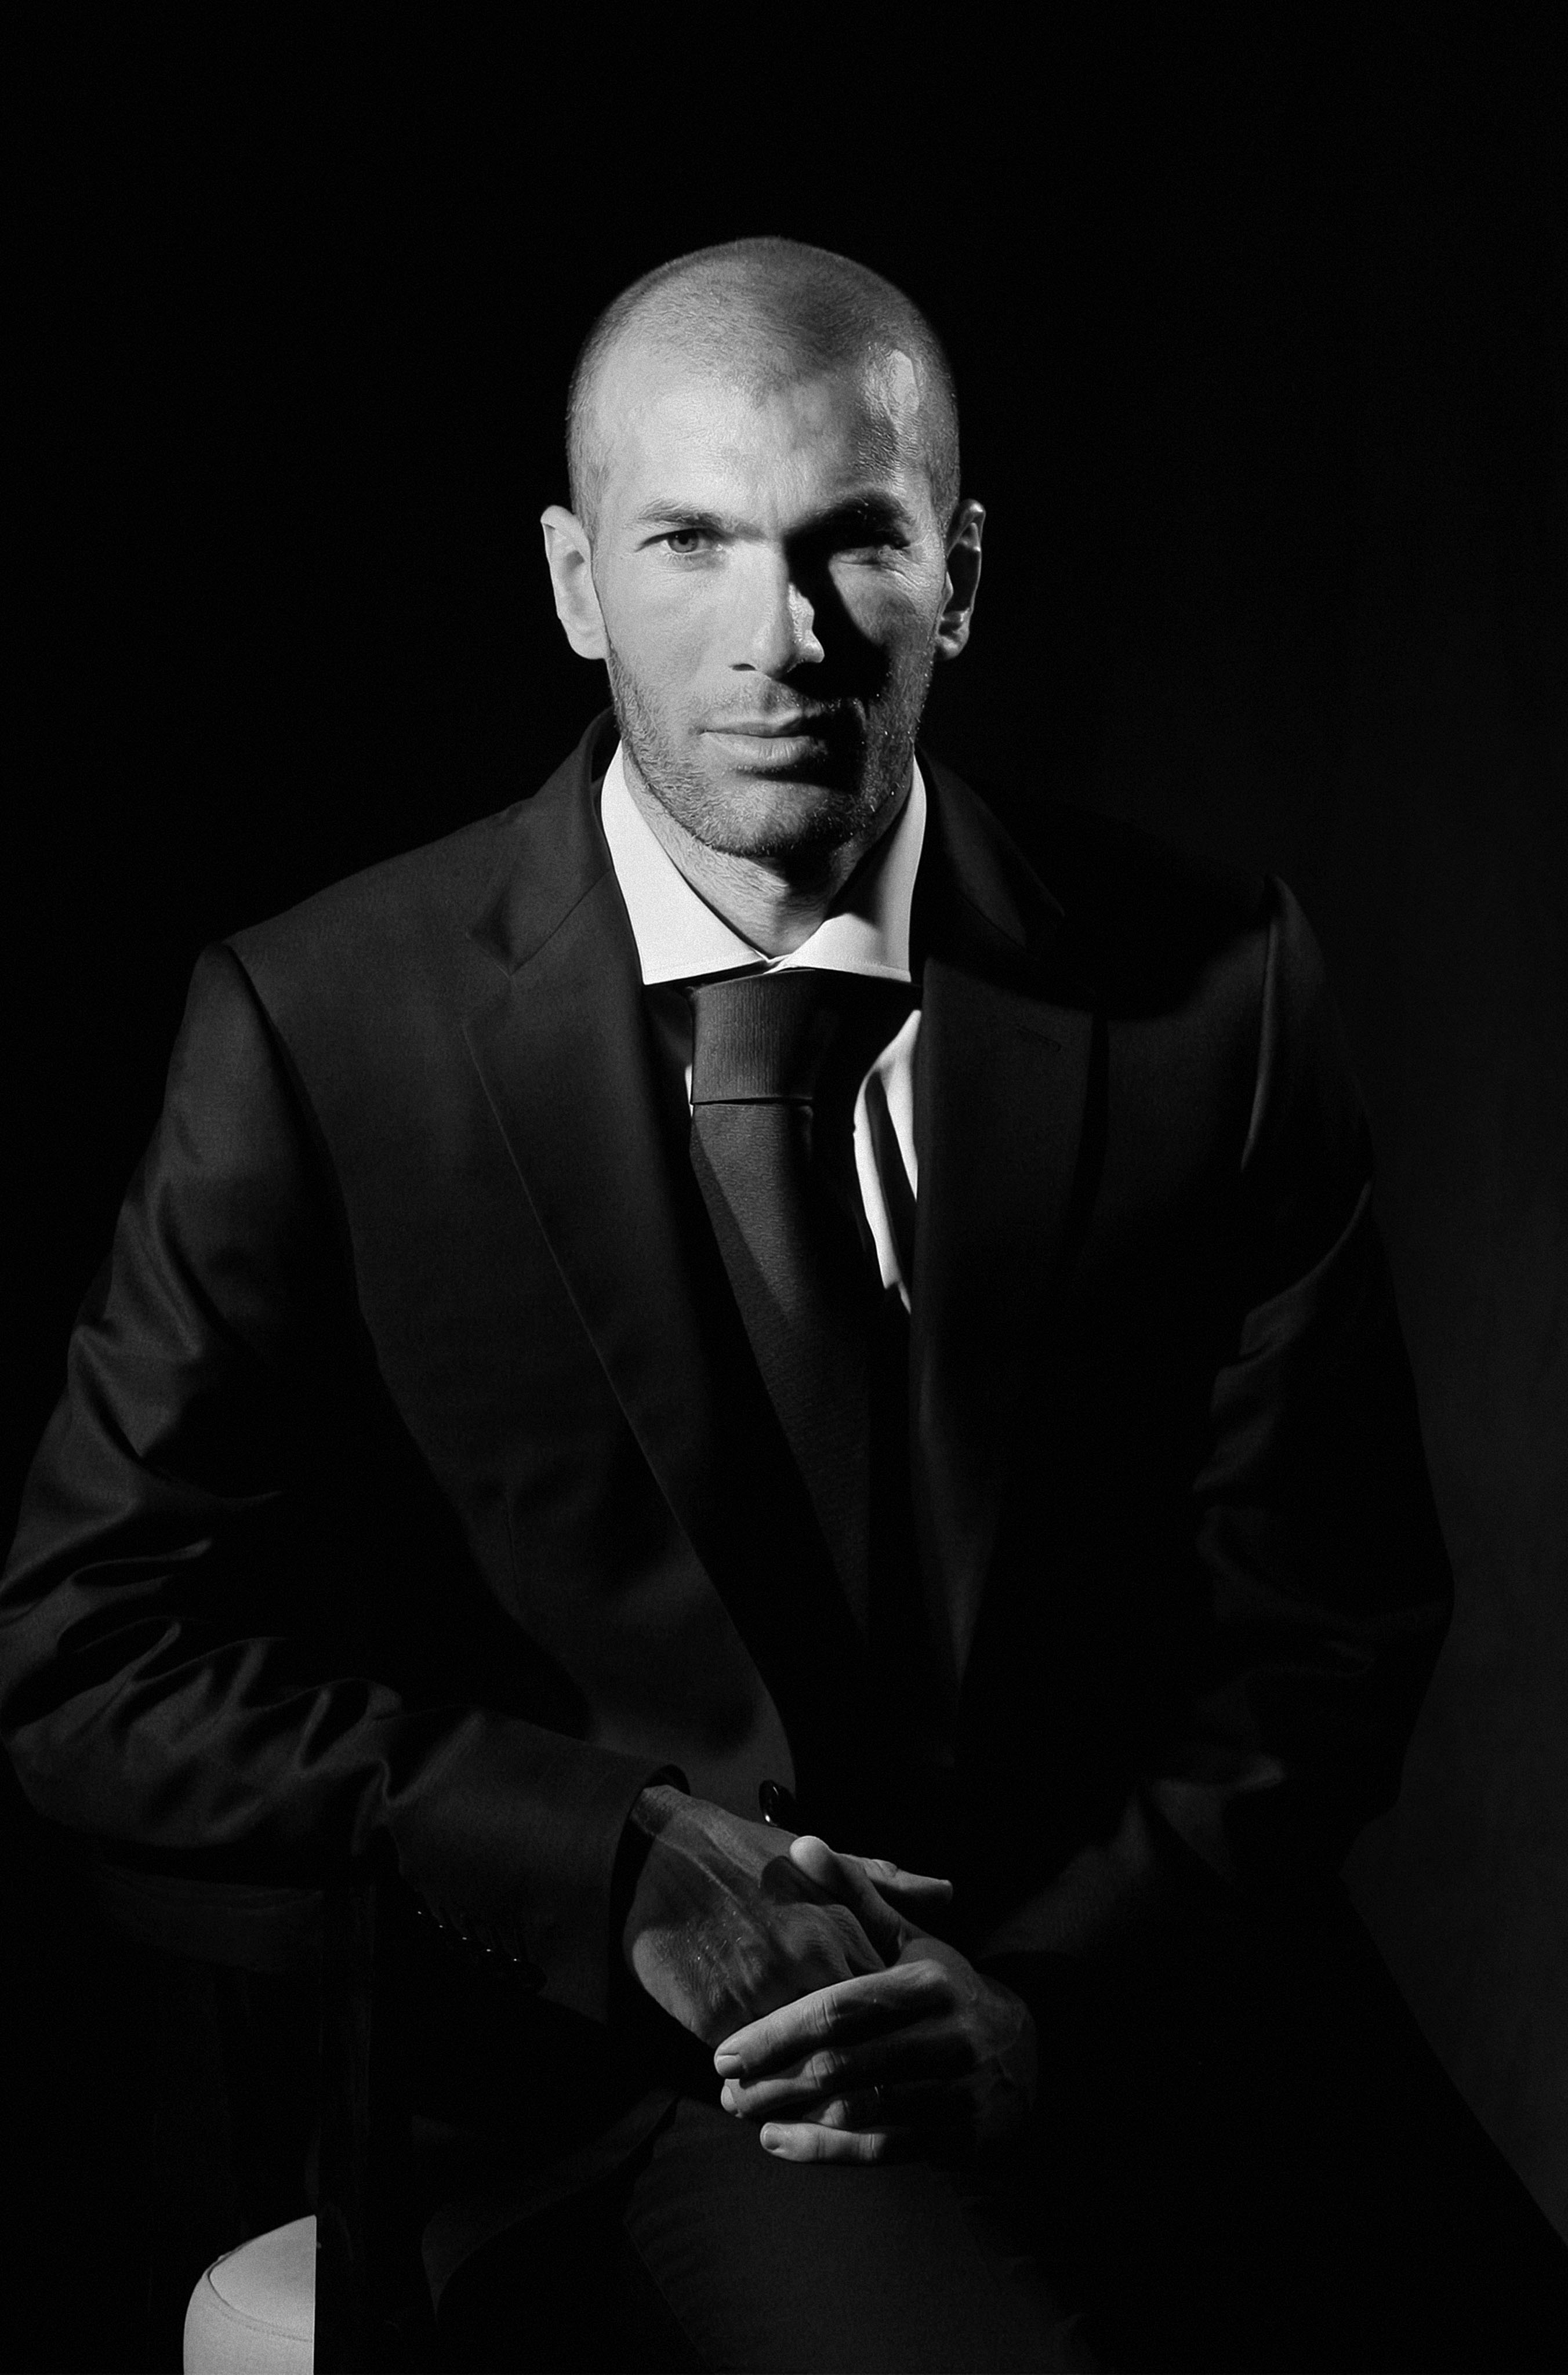 Zinedine Zidane photo, pics, wallpaper - photo #